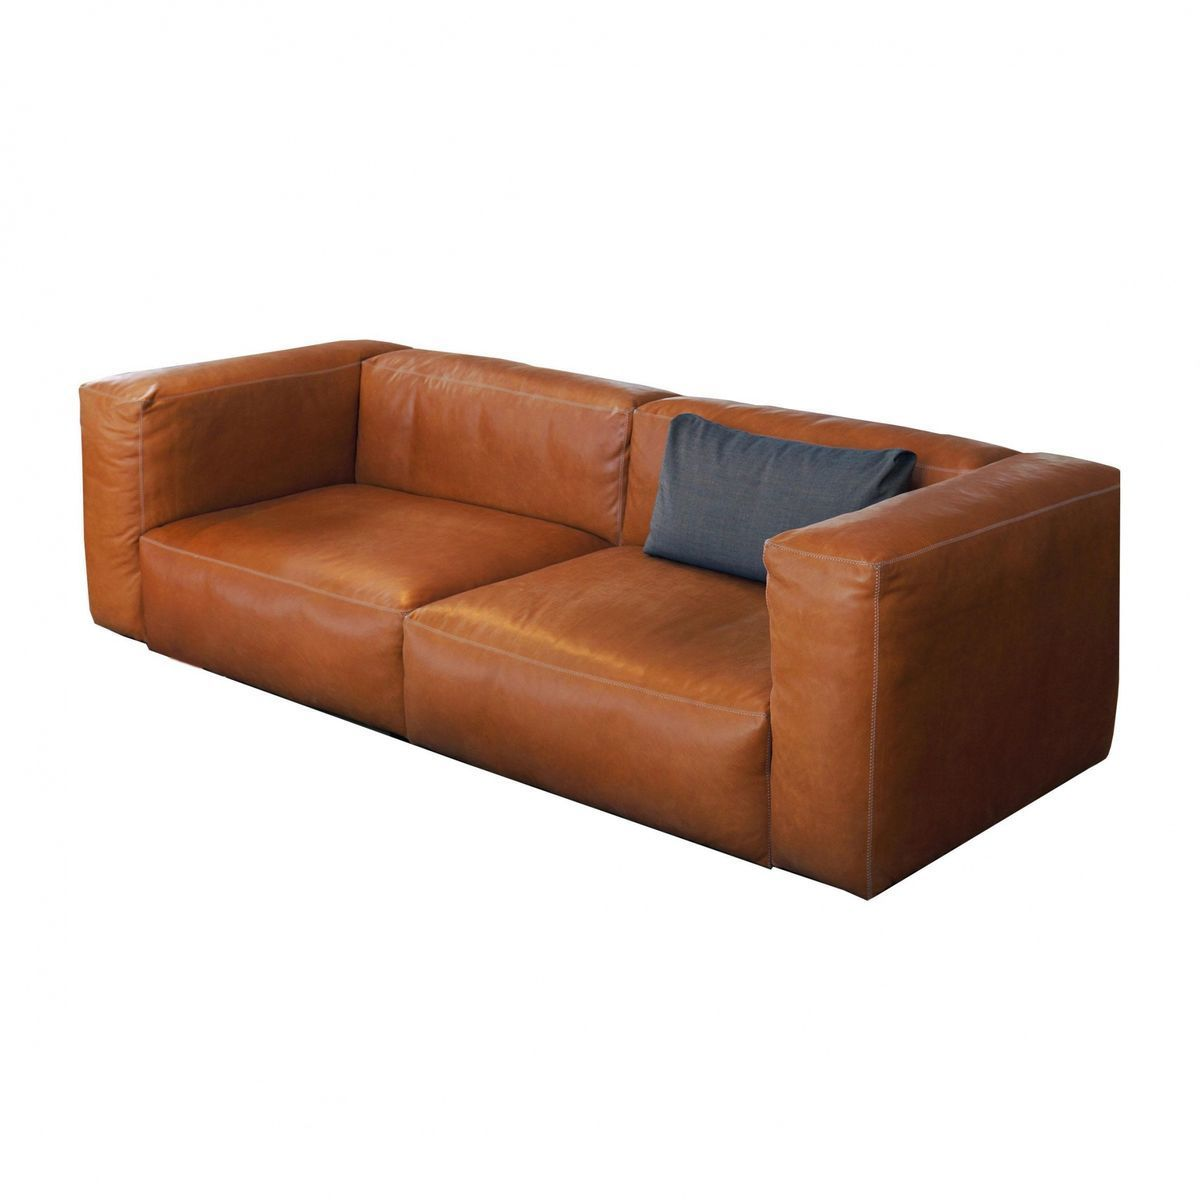 Outdoor Kissen Fermob Mags Soft 2,5 Seater Leather Sofa | Hay | Ambientedirect.com